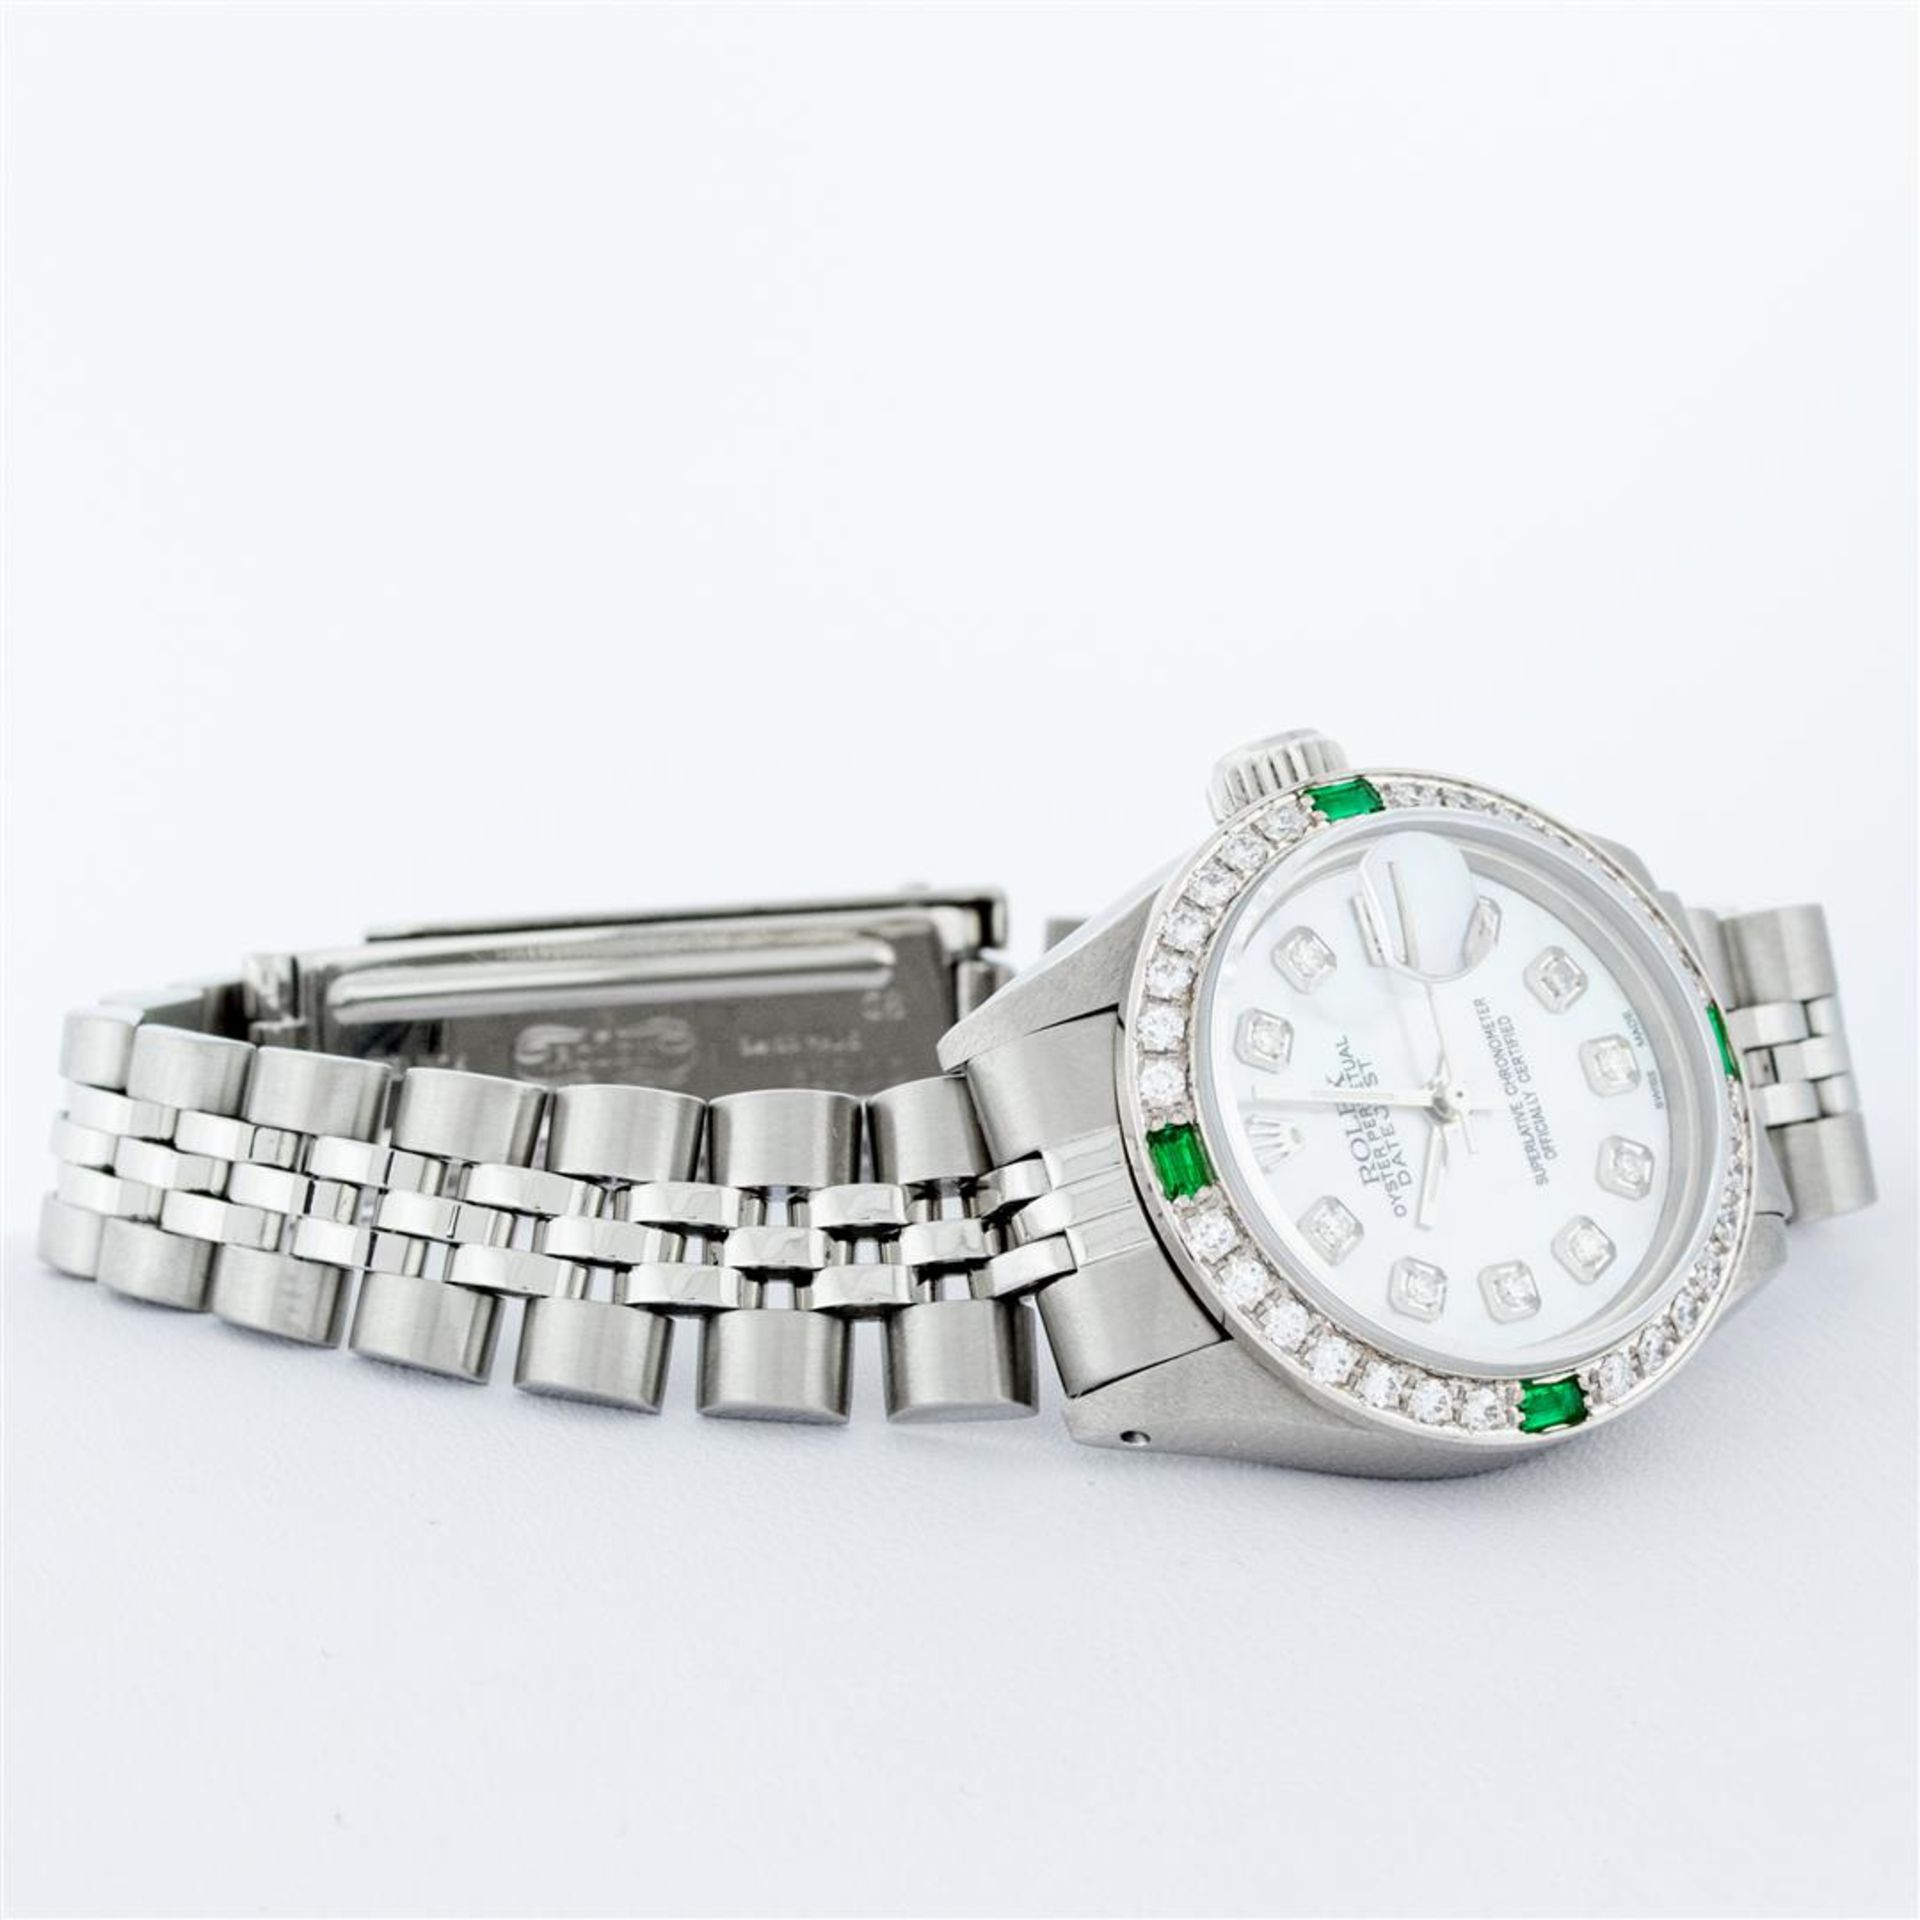 Rolex Ladies Stainless Steel Mother Of Pearl Diamond 26MM Datejust Wristwatch - Image 4 of 9